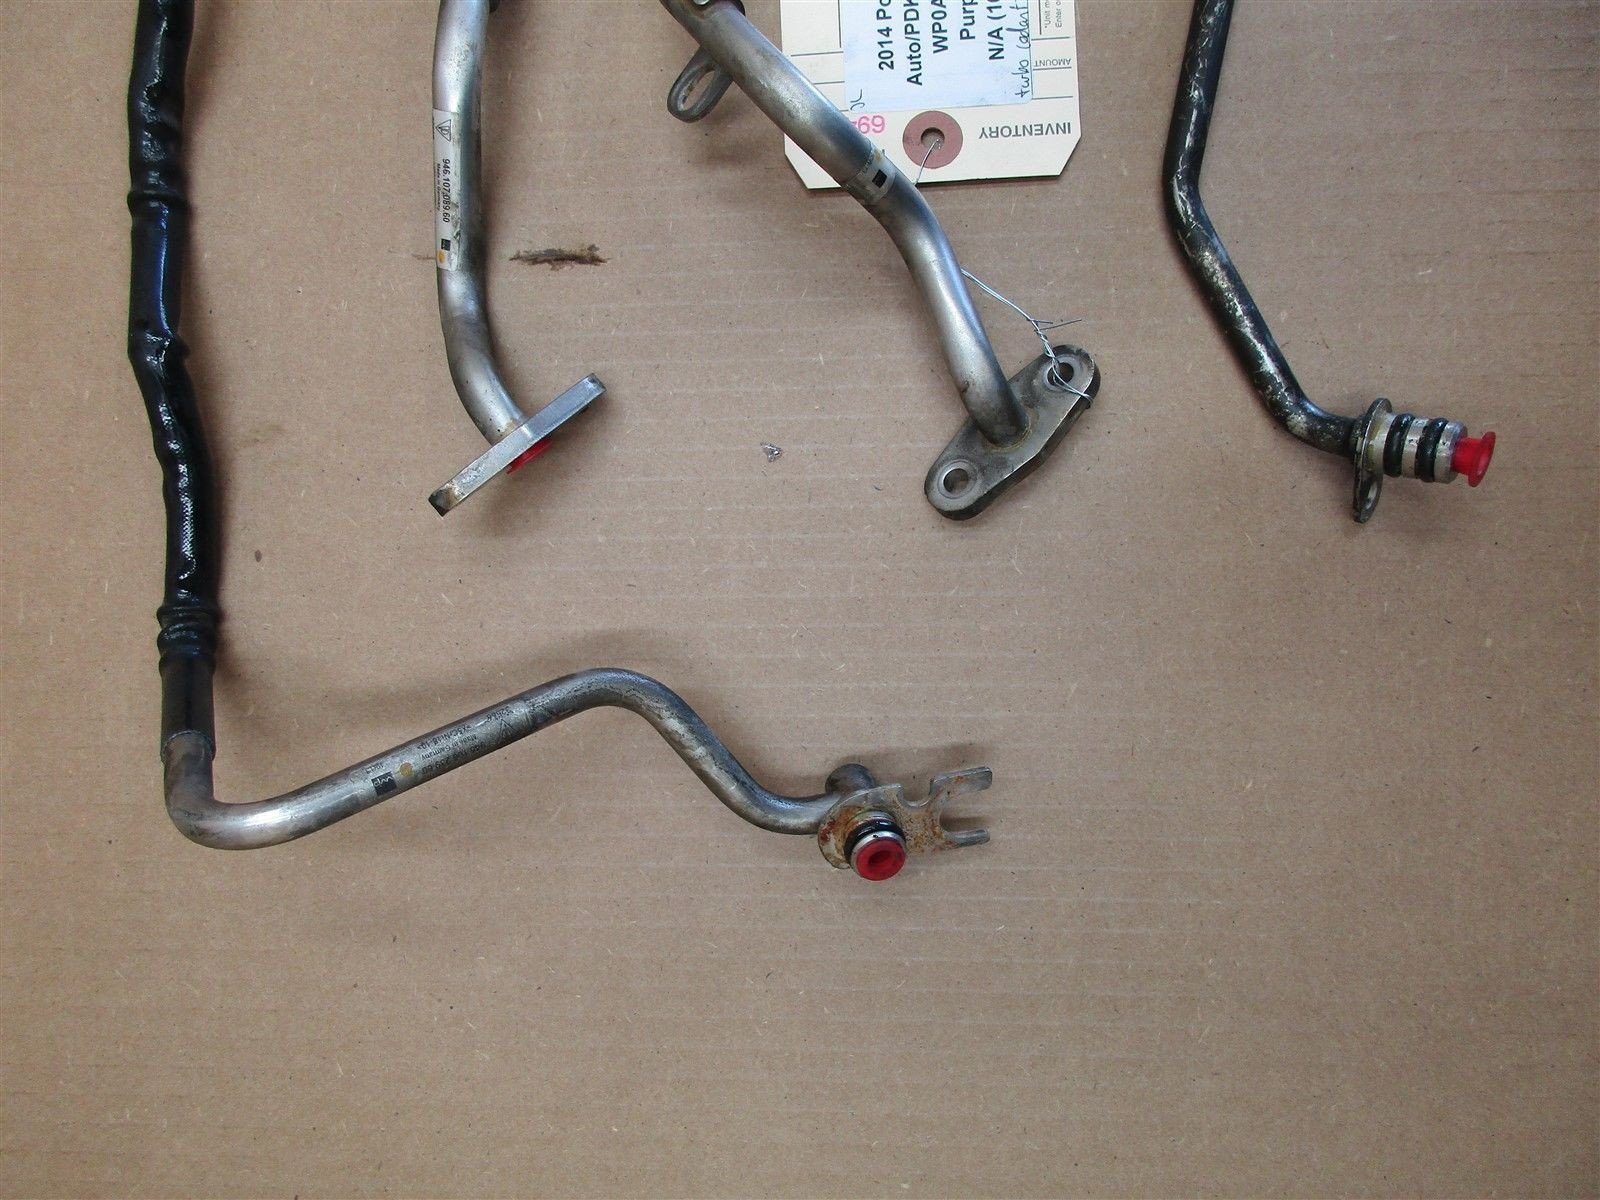 14 Panamera 4S Turbo 970 Porsche Engine 3.0 L R COOLANT PIPES 94610623760 16 N/A